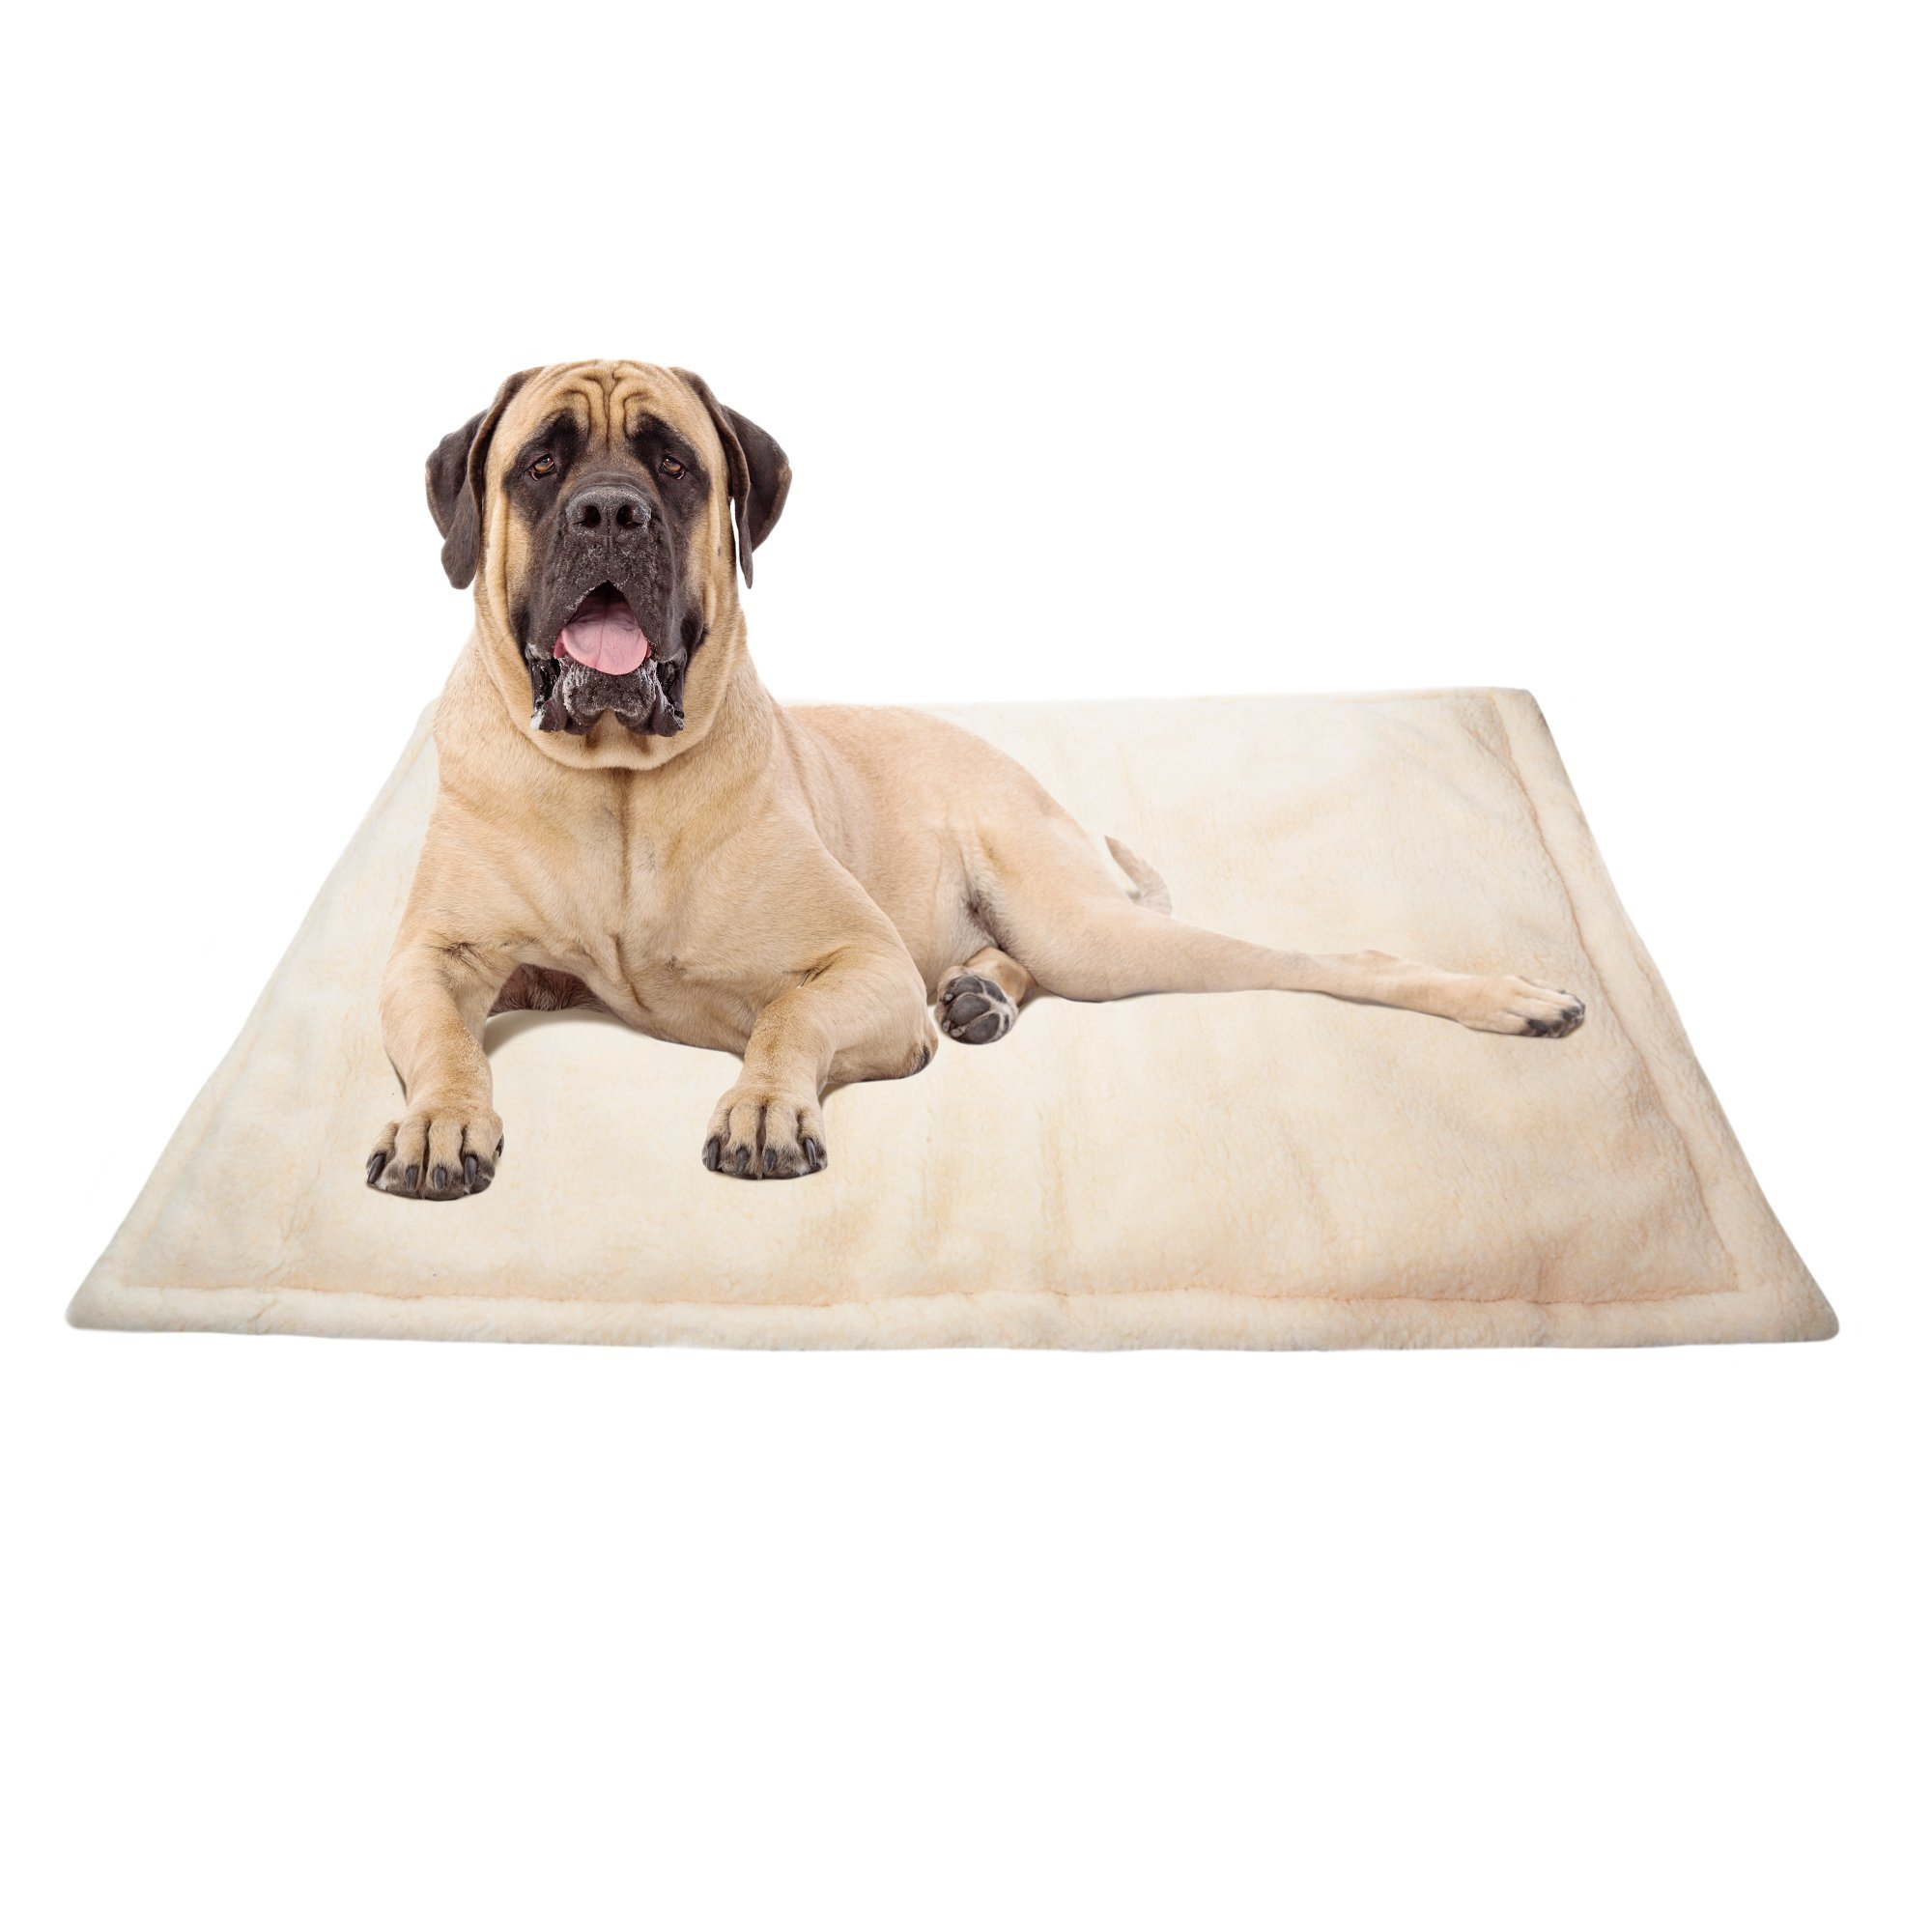 All Seasons Products 48x30 inch Dog Kennel Crate Mat Pad and Pet Bed for Extra Large Dogs, Machine Washable, Water-Resistent, Indoor or Outdoor